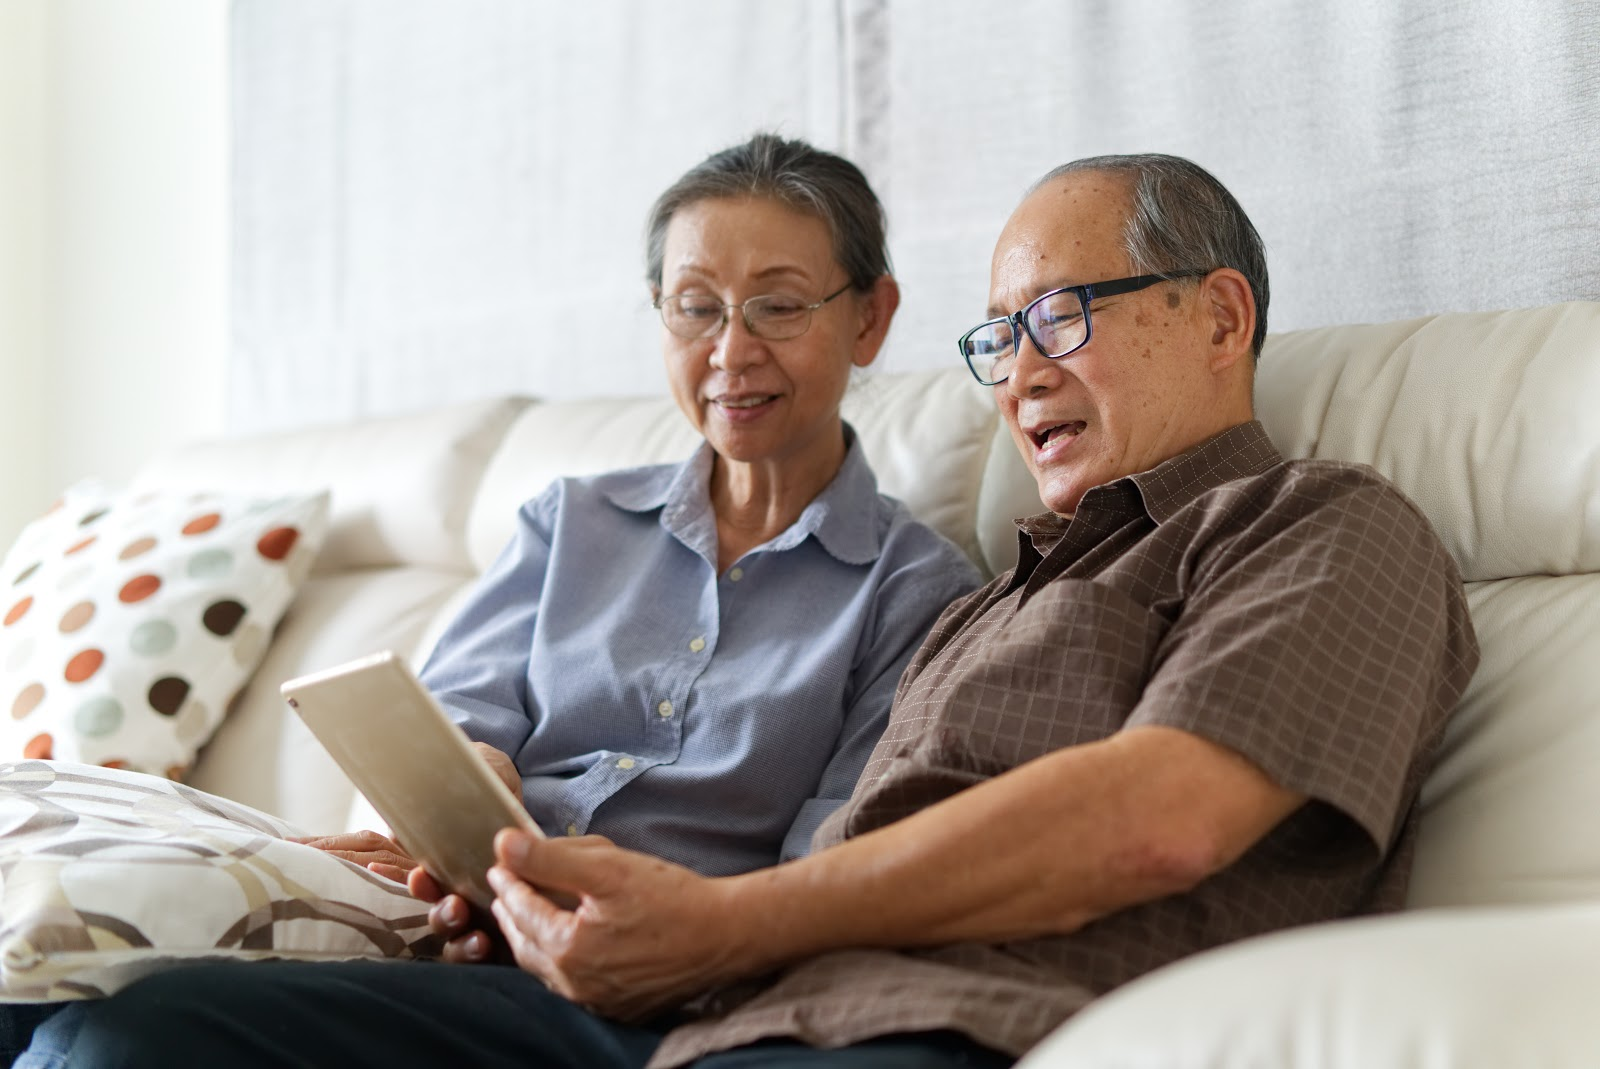 Smiling senior couple sitting on a couch while looking at a tablet